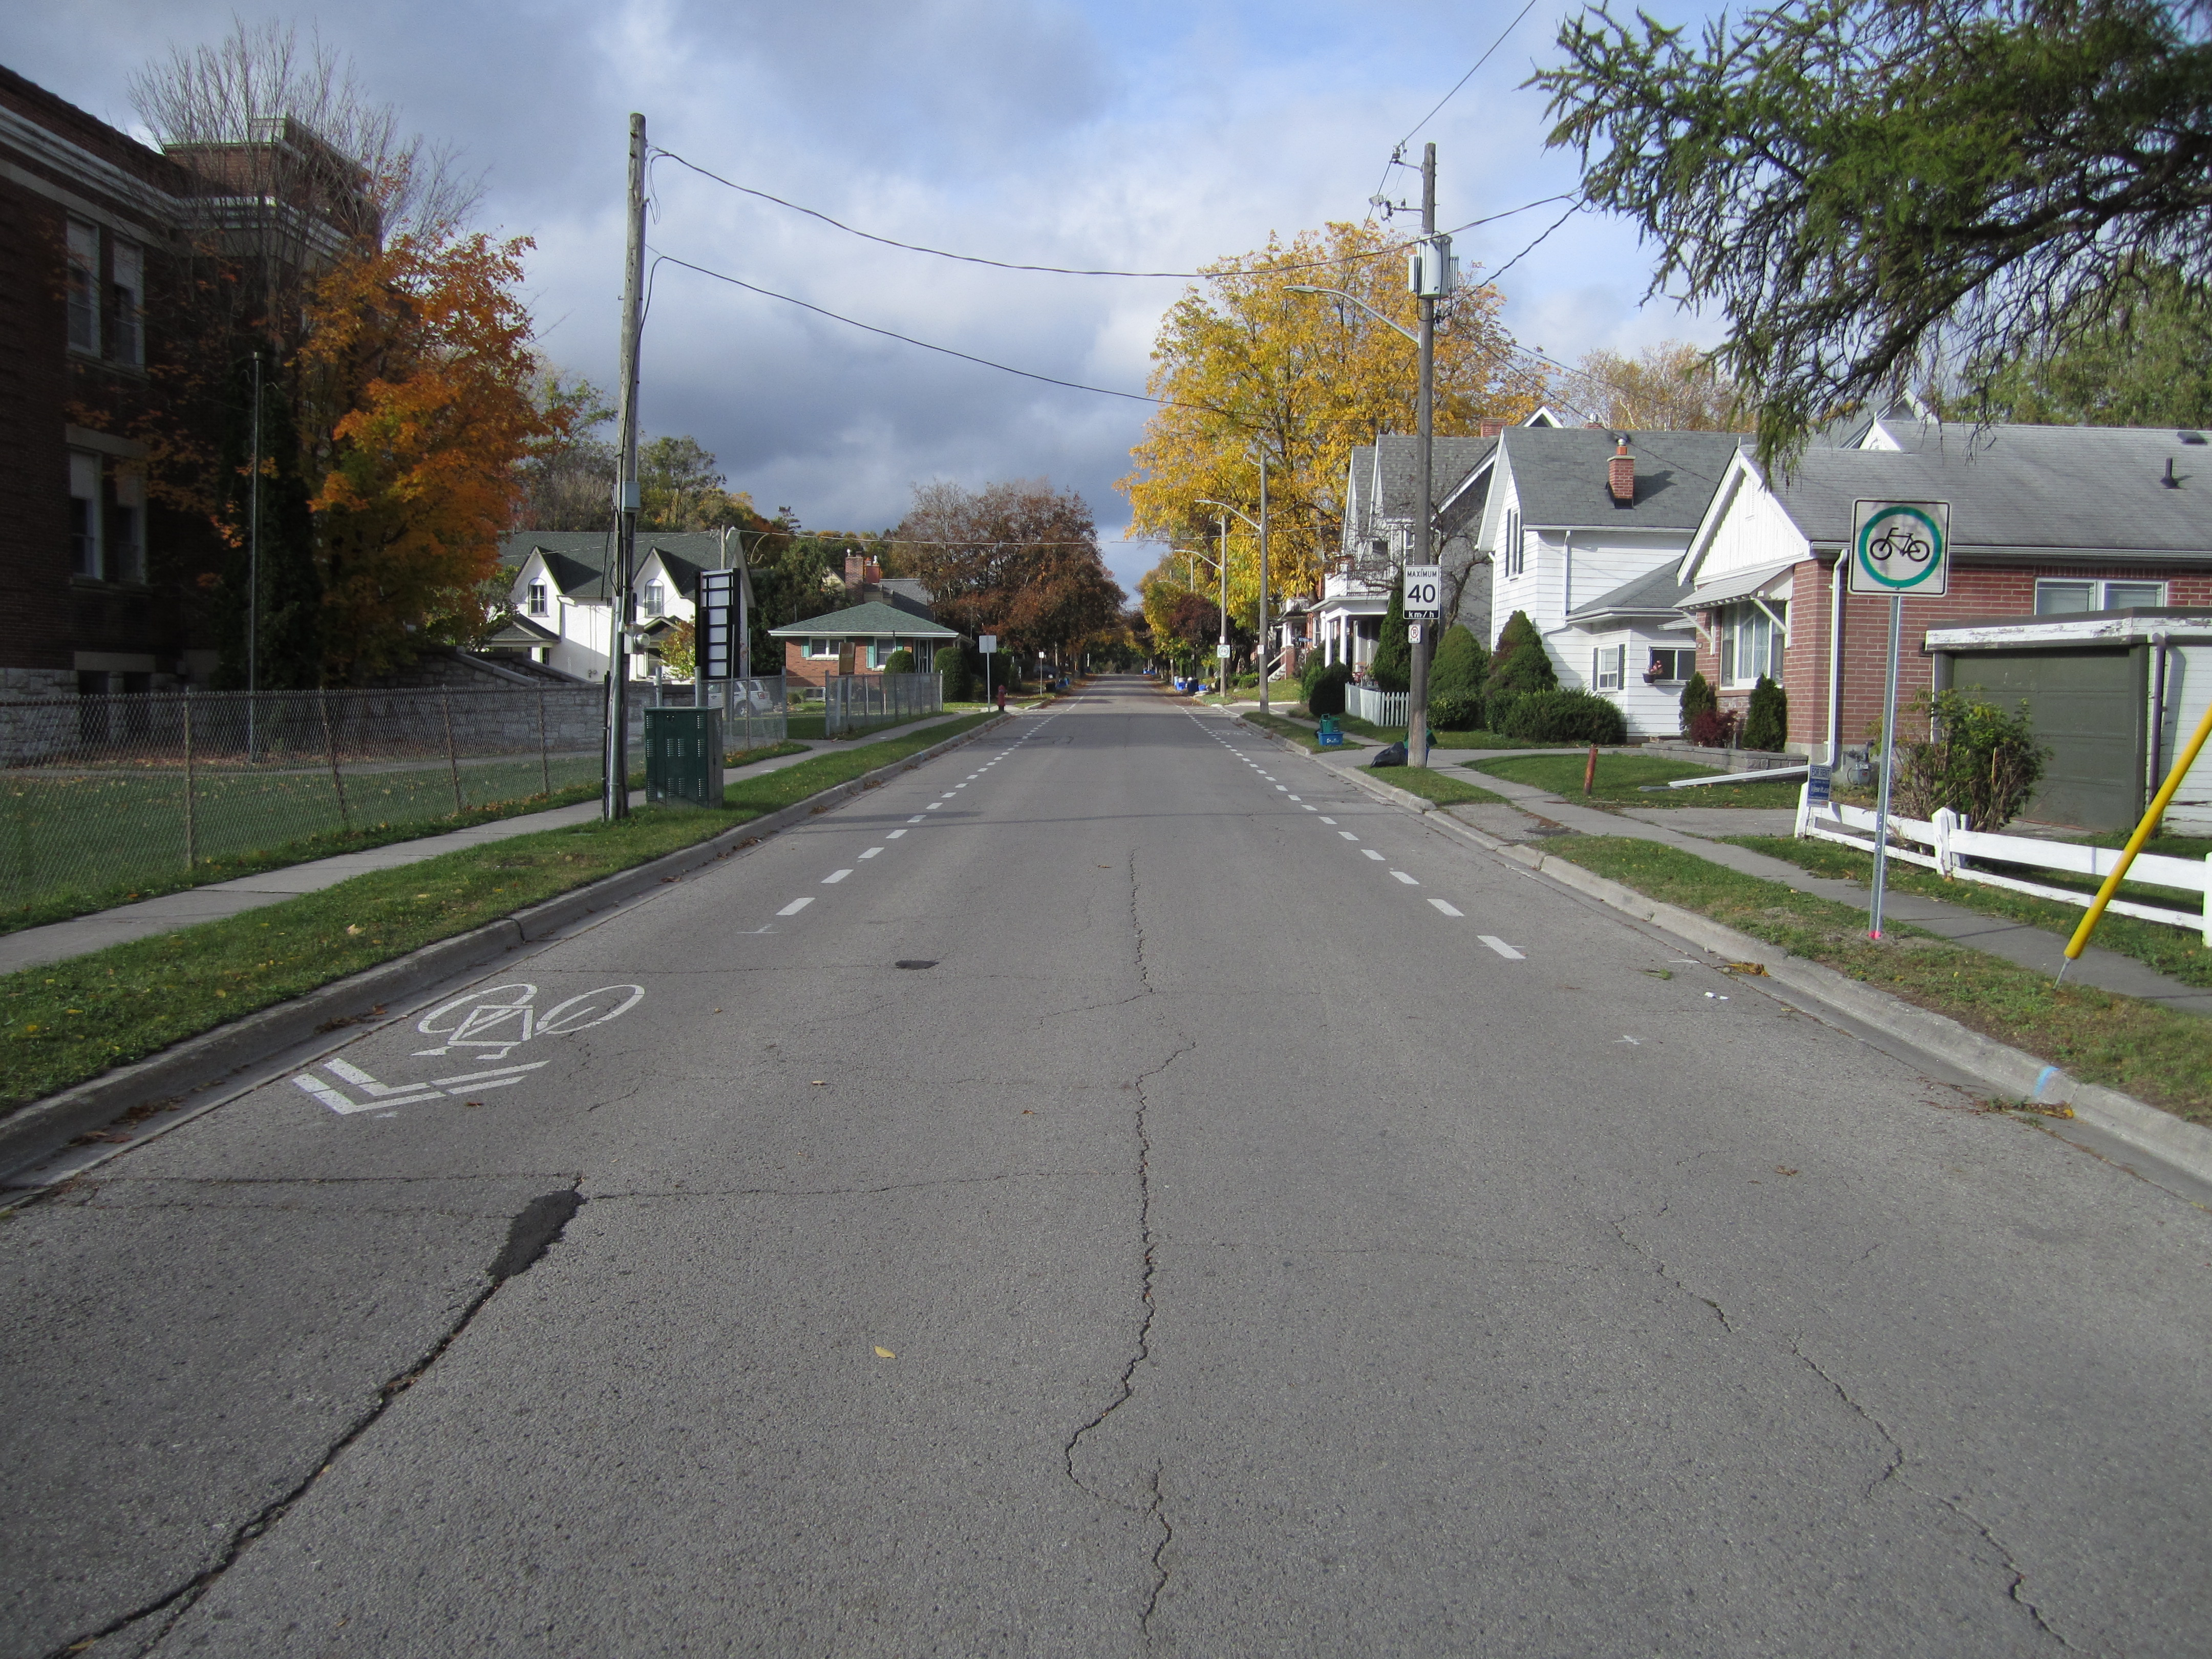 Road in Newmarket with Advisory bike lanes